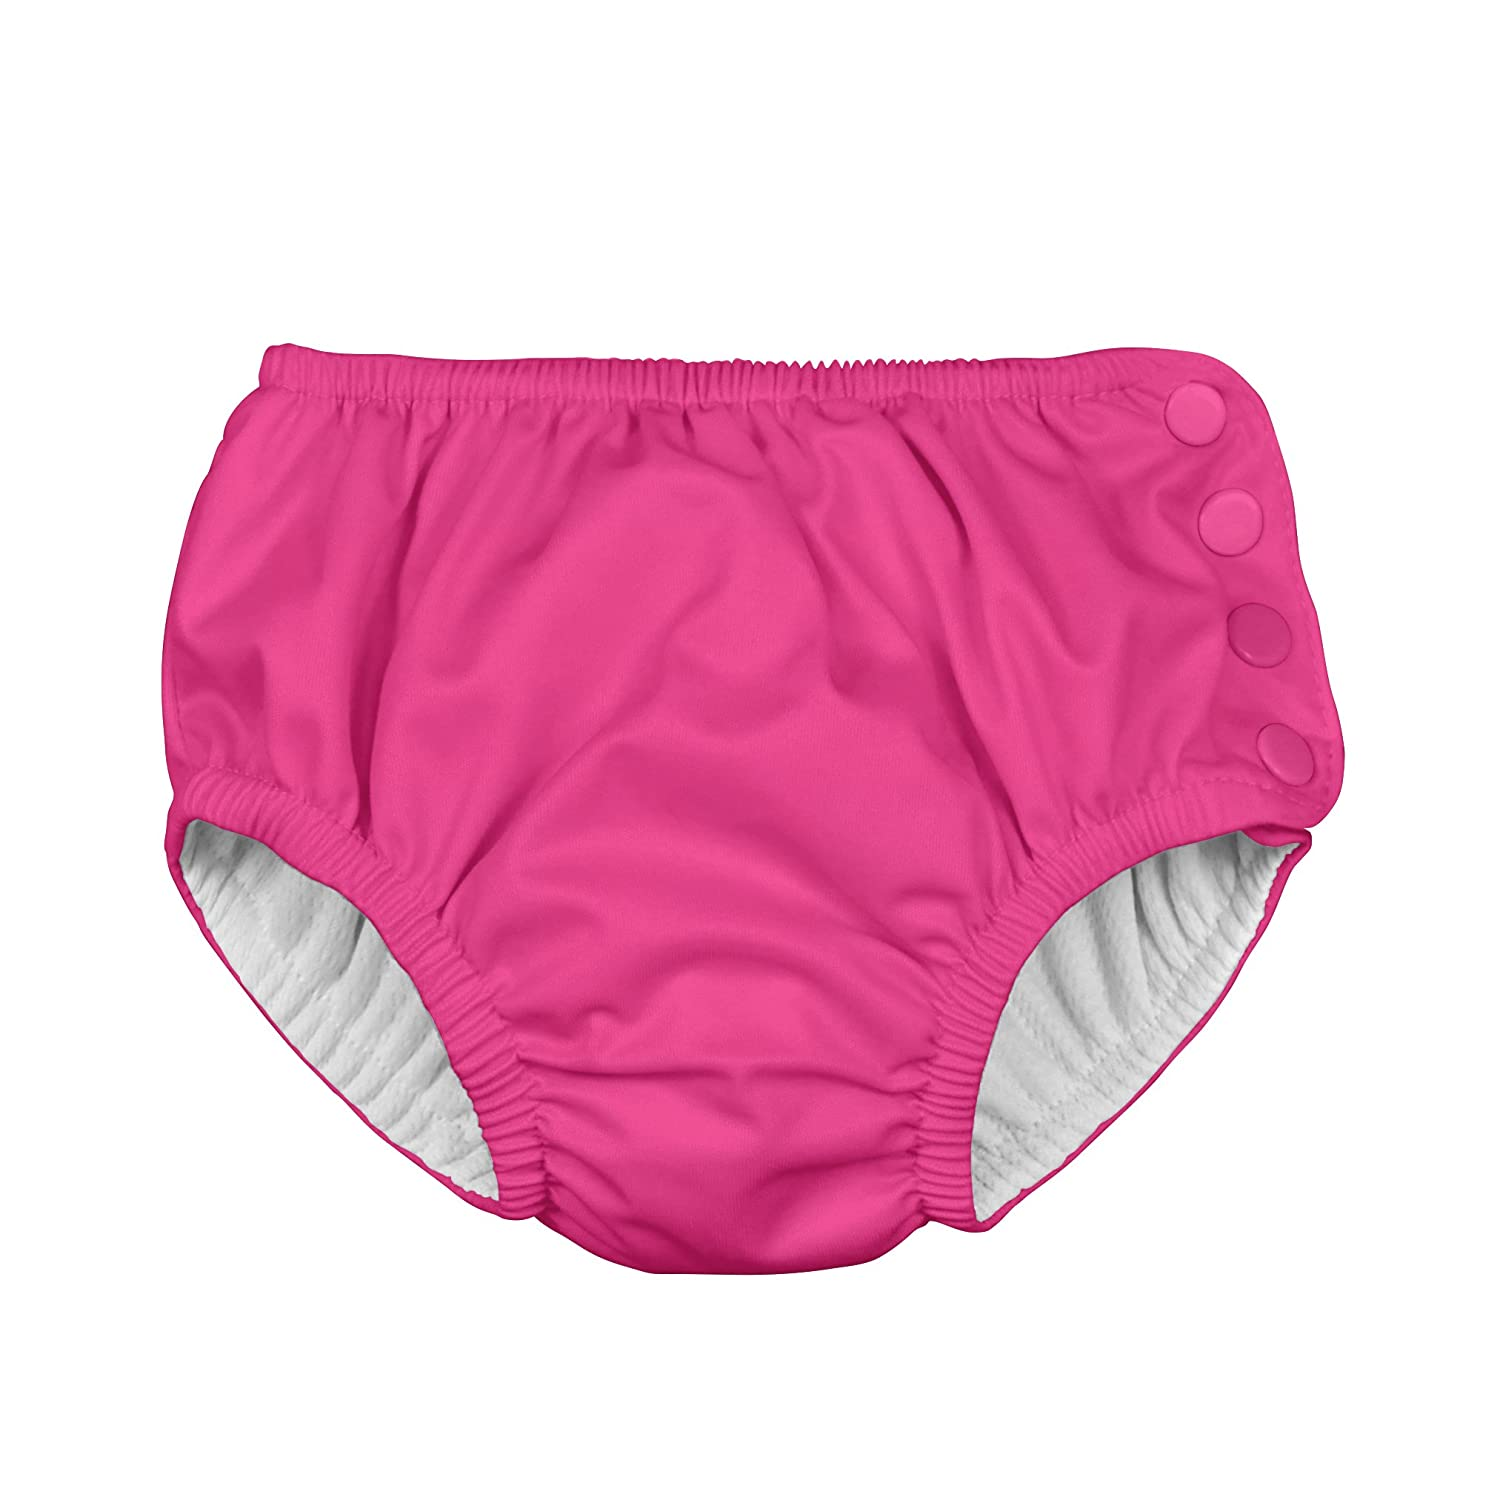 i play. Baby Snap Reusable Absorbent Swim Diaper, Hot Pink, 12-18 months i play Children's Apparel 711200